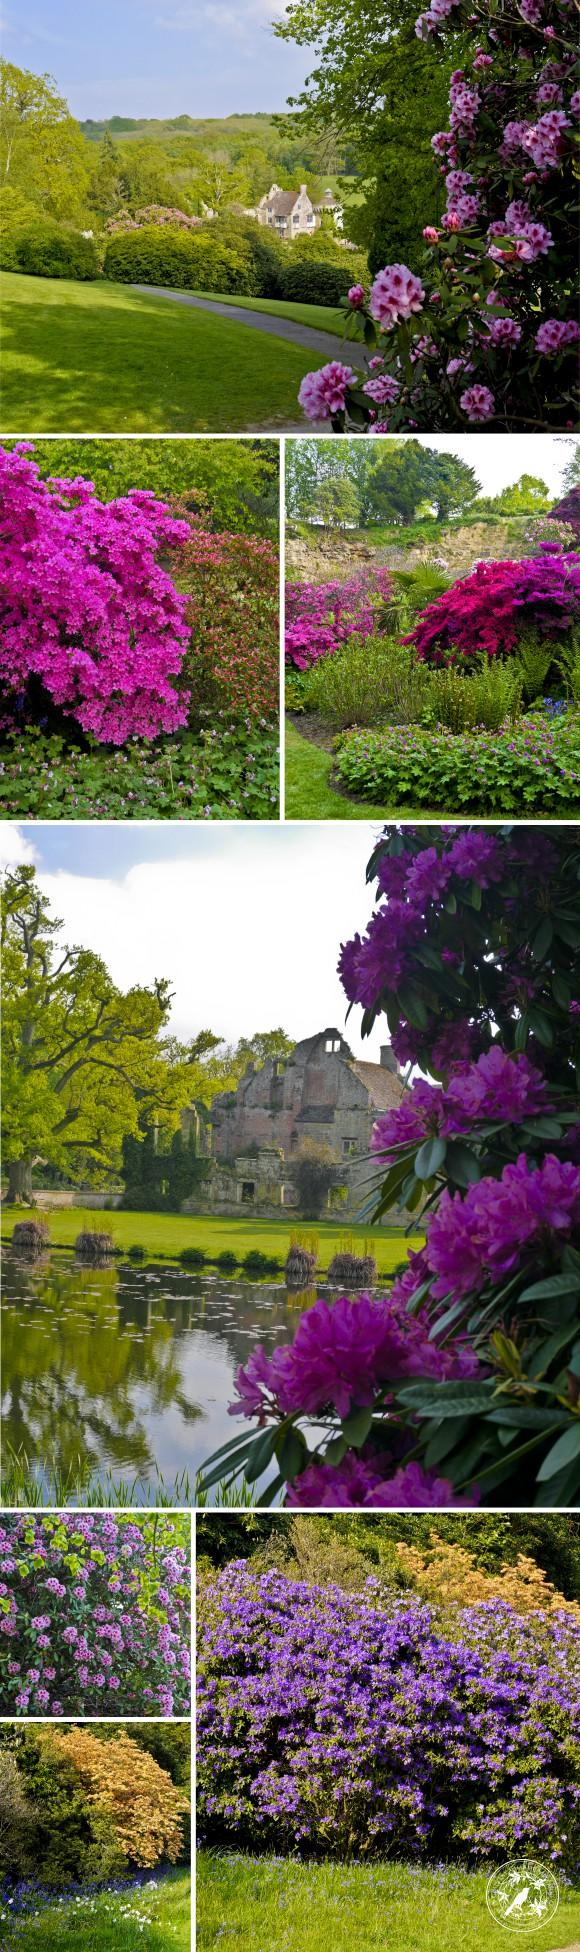 RhododendronCollage